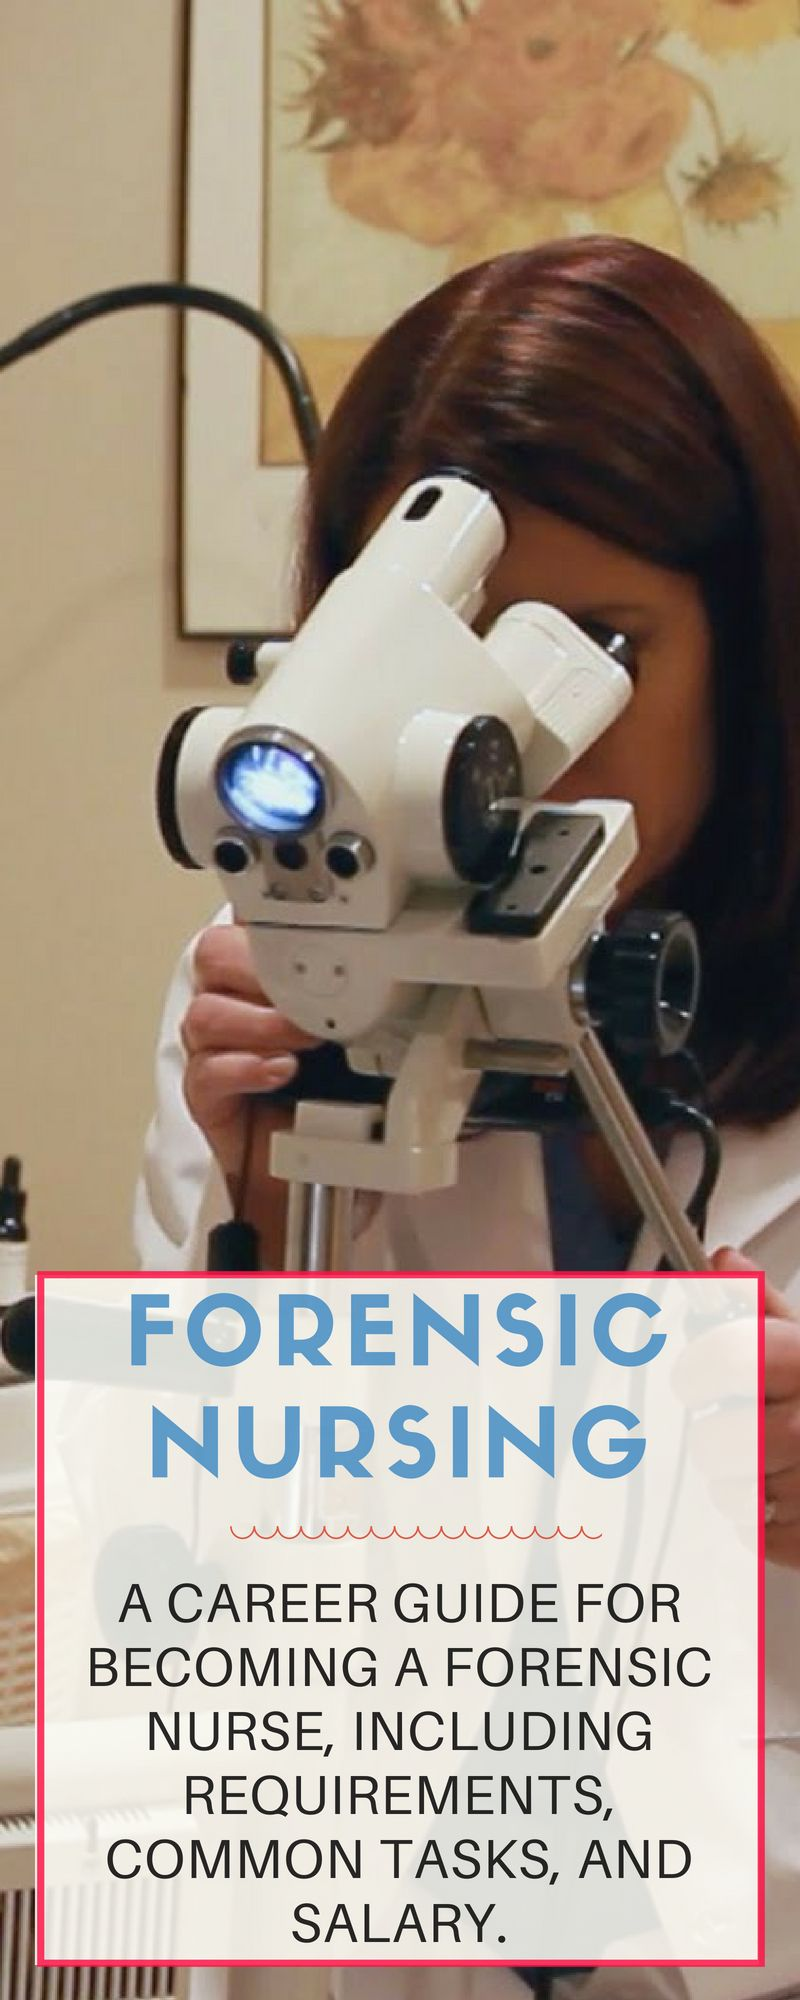 Learn More About The Field Of Forensic Nursing And Everything That It Takes To Enter This Field Nurse Practitioner Programs Forensics Nursing Students